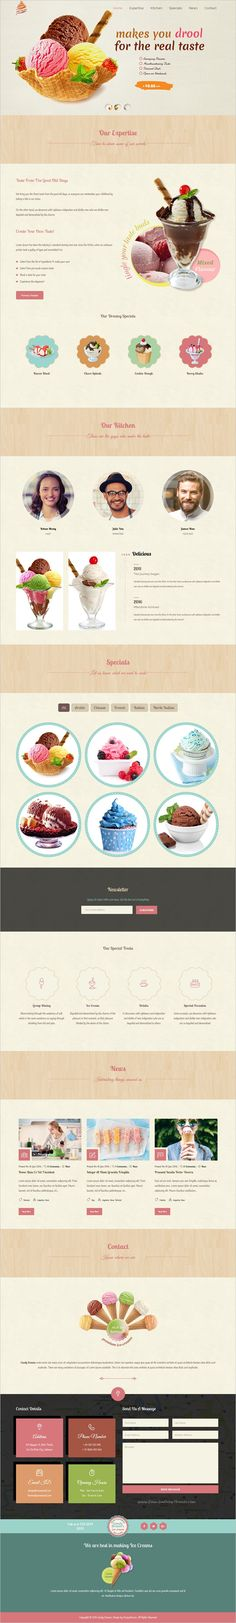 Food is beautifully design responsive 3in1 #WordPress theme for restaurants, #icecream #parlors, bars & pubs, wineries, cafe, bakery and other hospitality businesses website download now➩ https://themeforest.net/item/foods-restaurant-bar-ice-cream-wp-theme/18946351?ref=Datasata